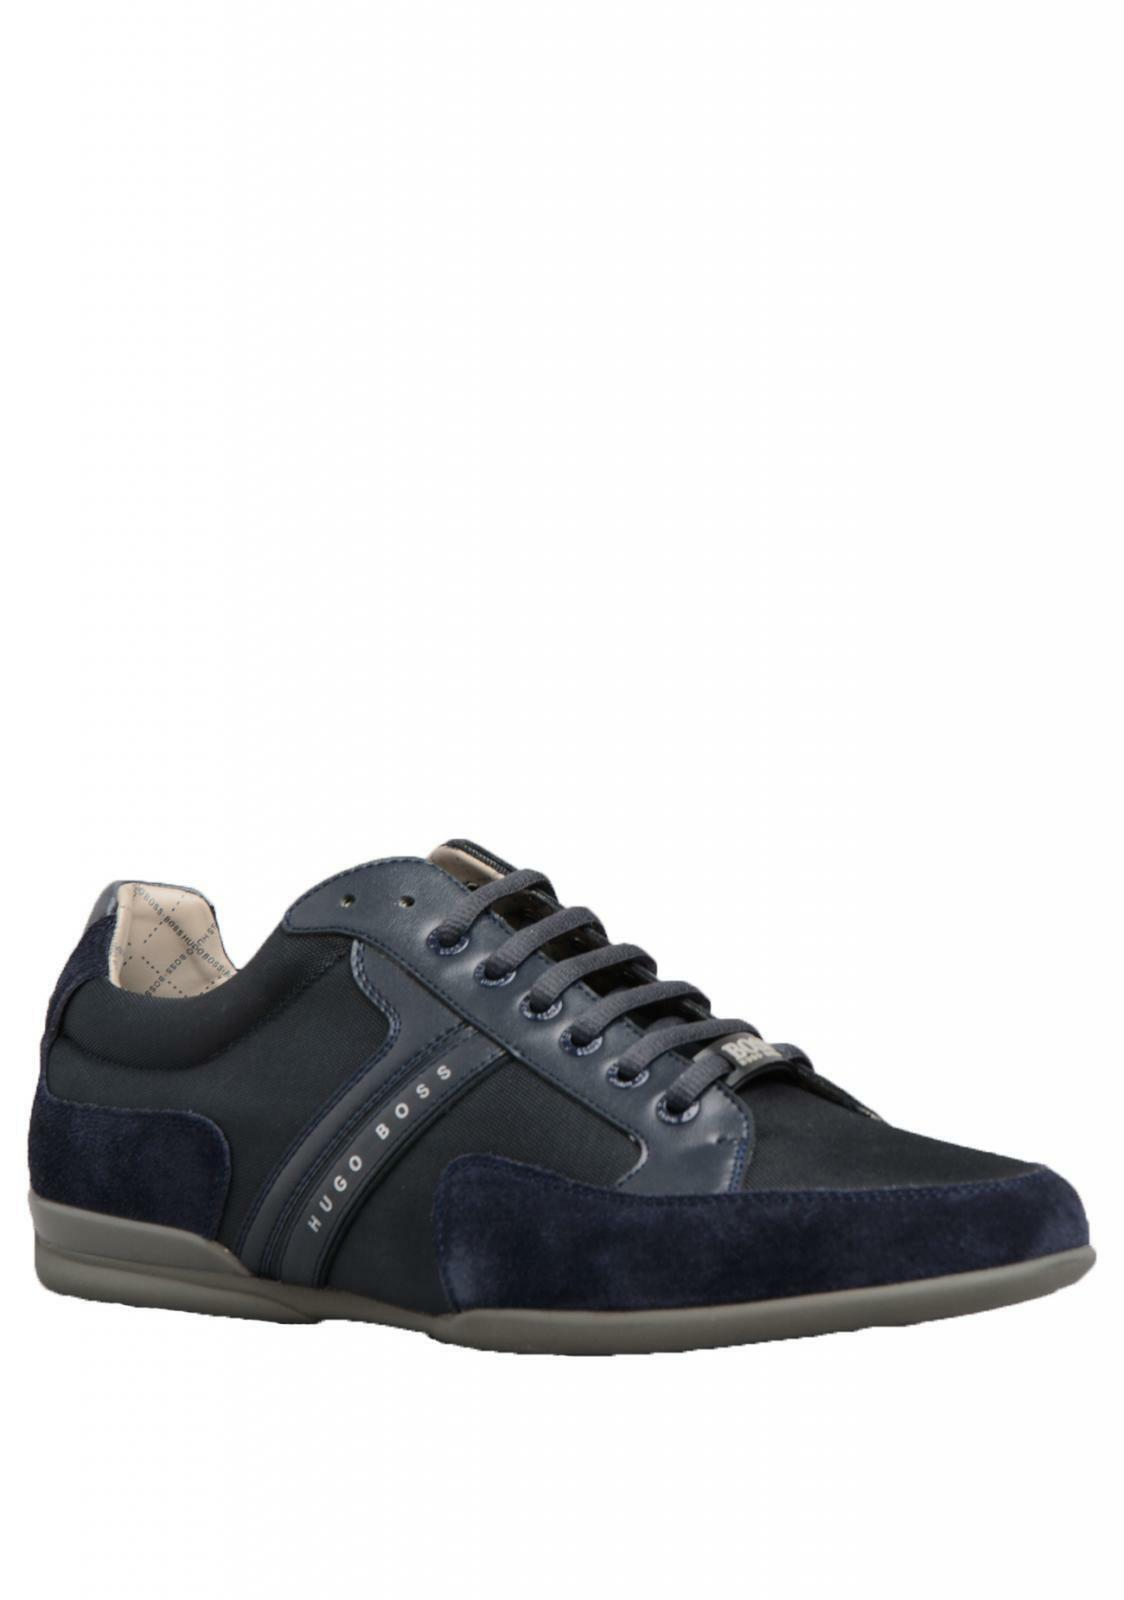 HUGO BOSS Trainer TURNSCHUHE - Herren 632 Spacit Trainer BOSS in marine blau 626313